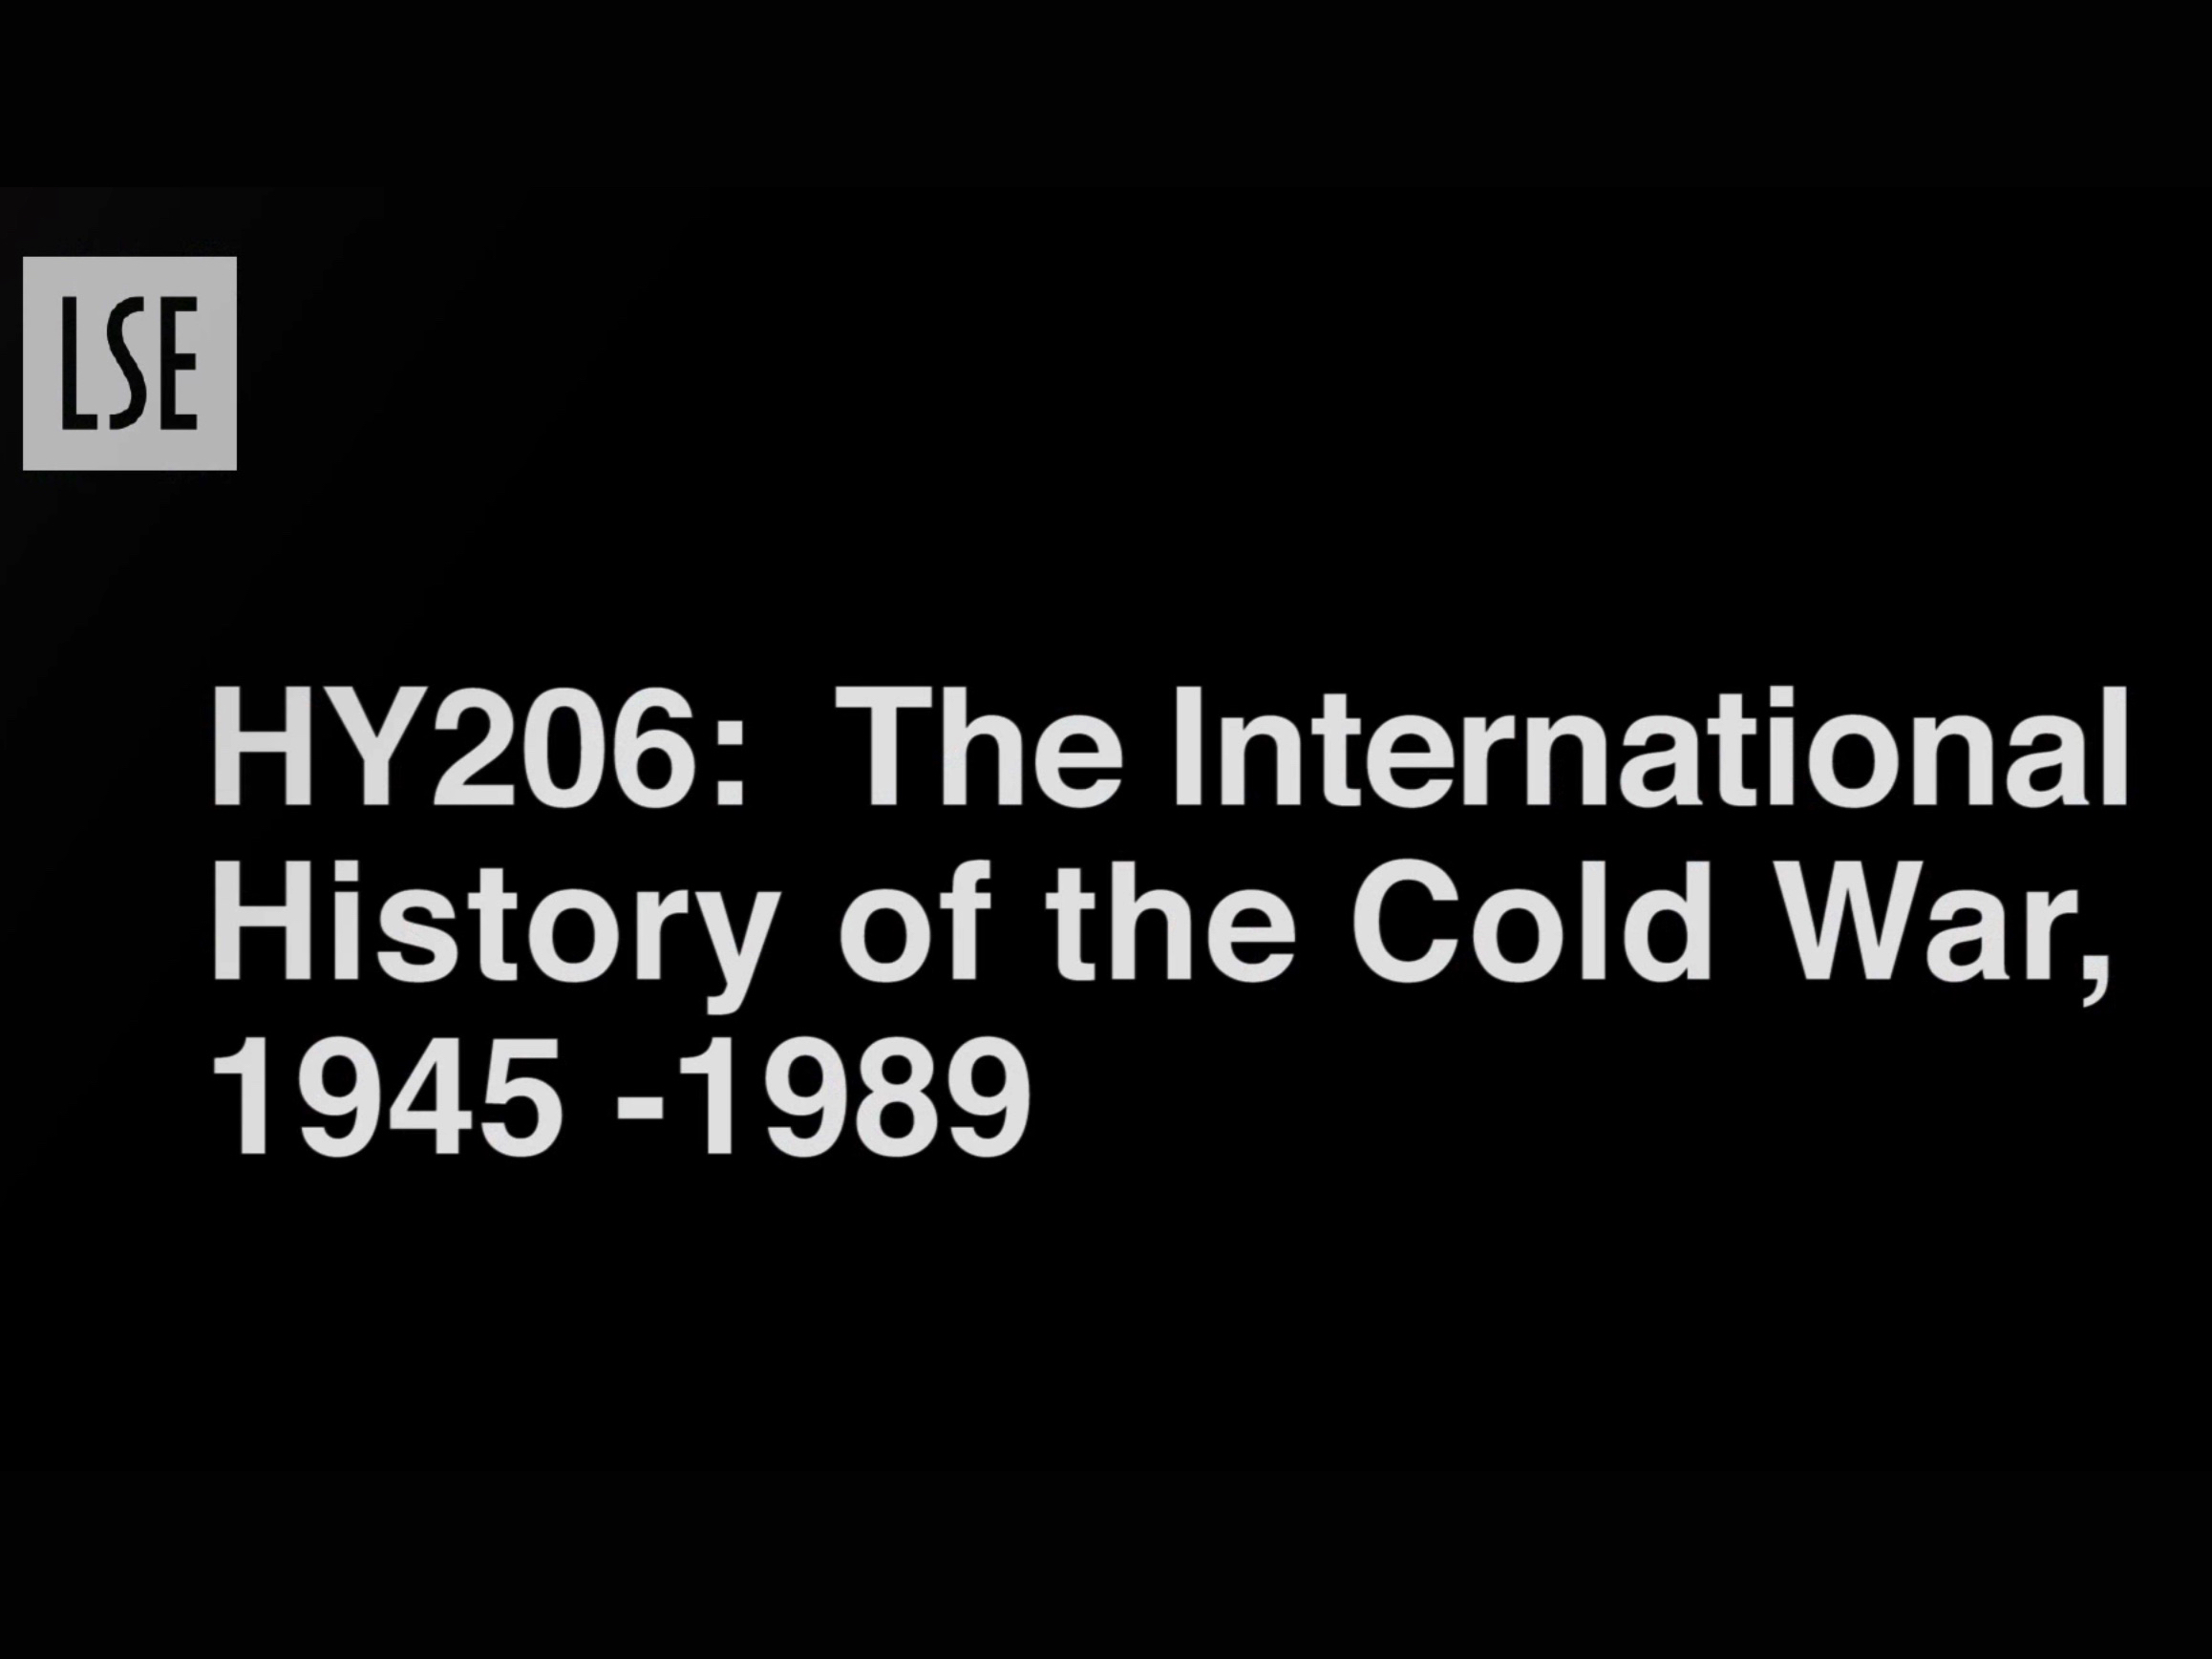 HY206: The International History of the Cold War, 1945-1989